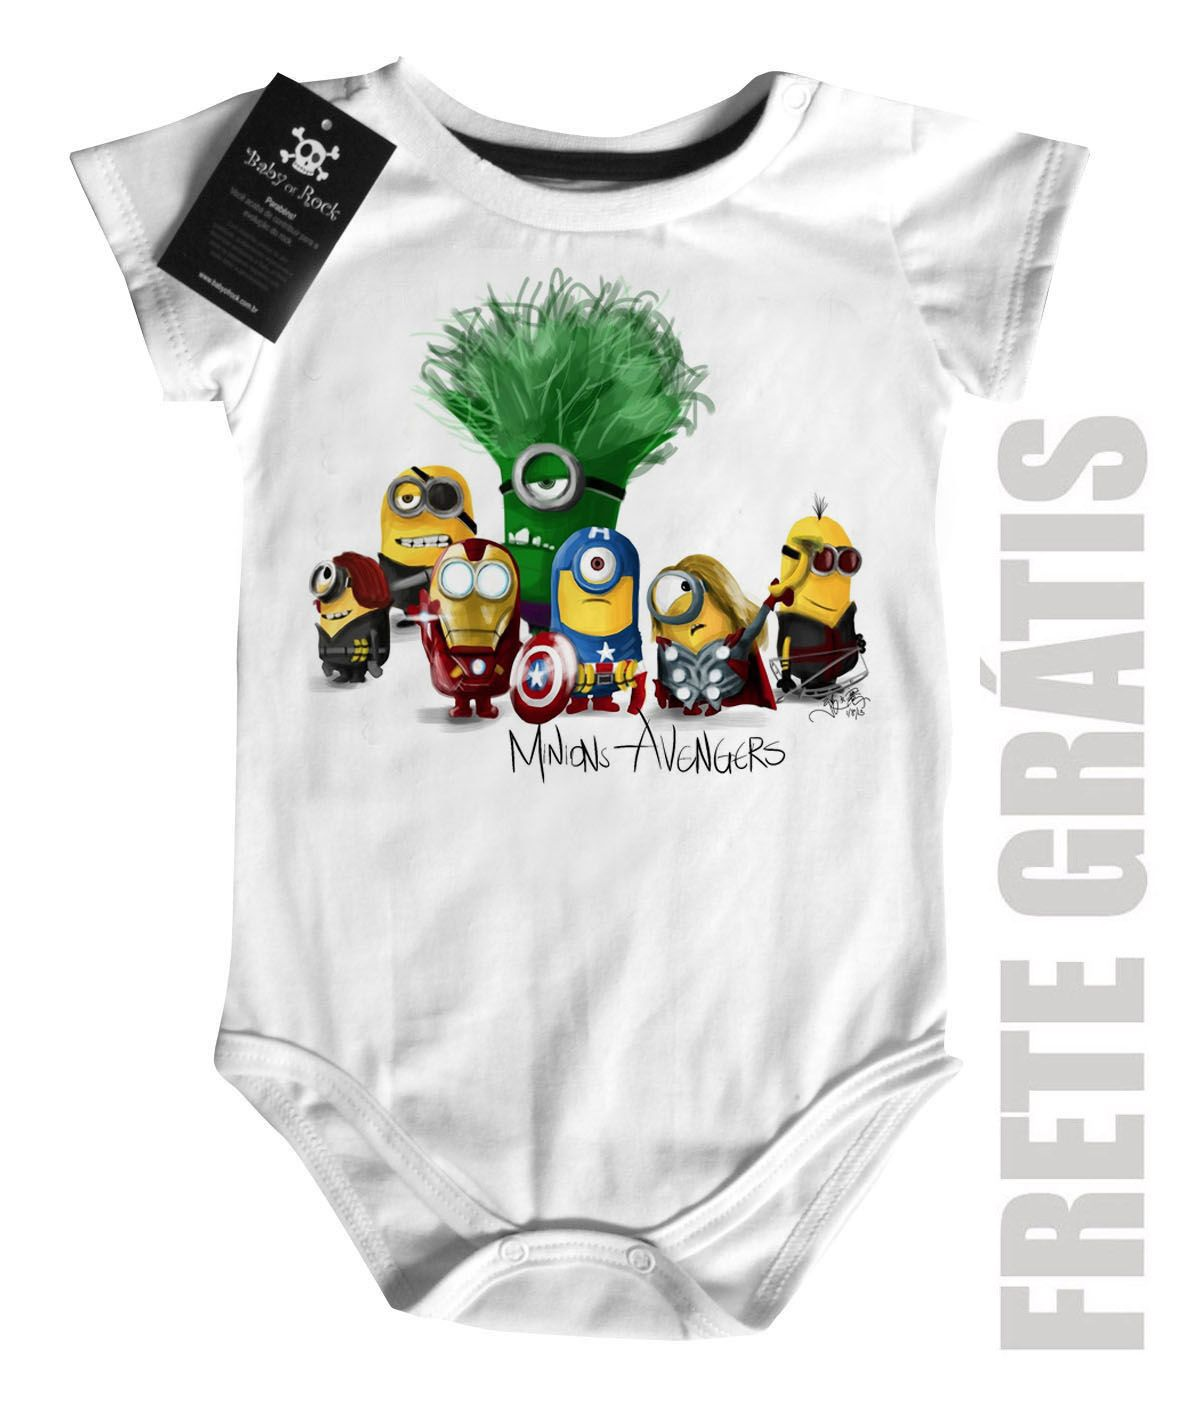 Body Bebe   os Vingadores Minions  - White  - Baby Monster - Body Bebe